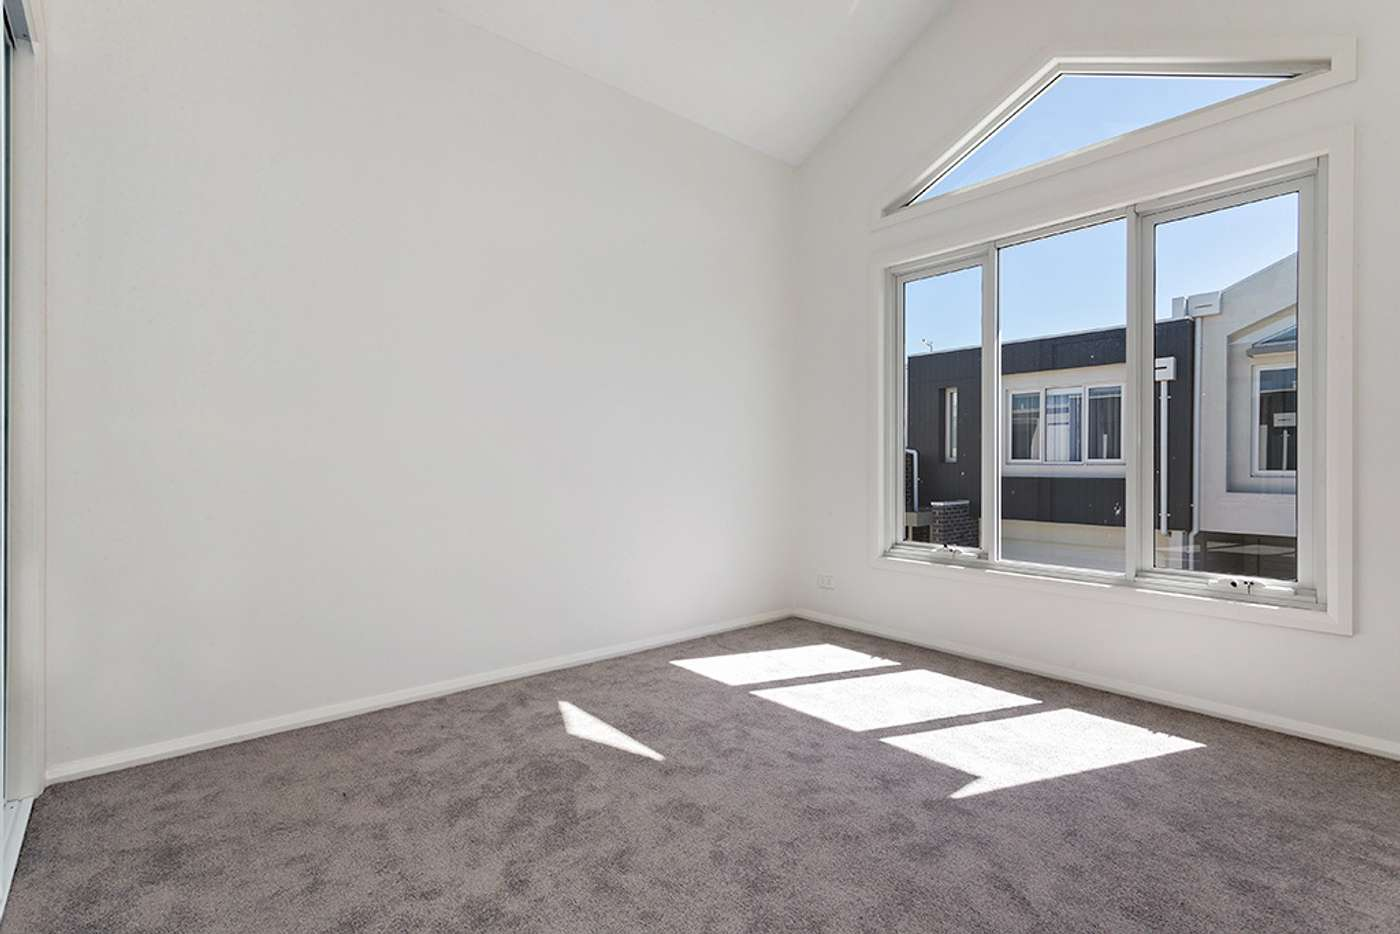 Sixth view of Homely townhouse listing, Unit 6/22-24 Military Road, Avondale Heights VIC 3034